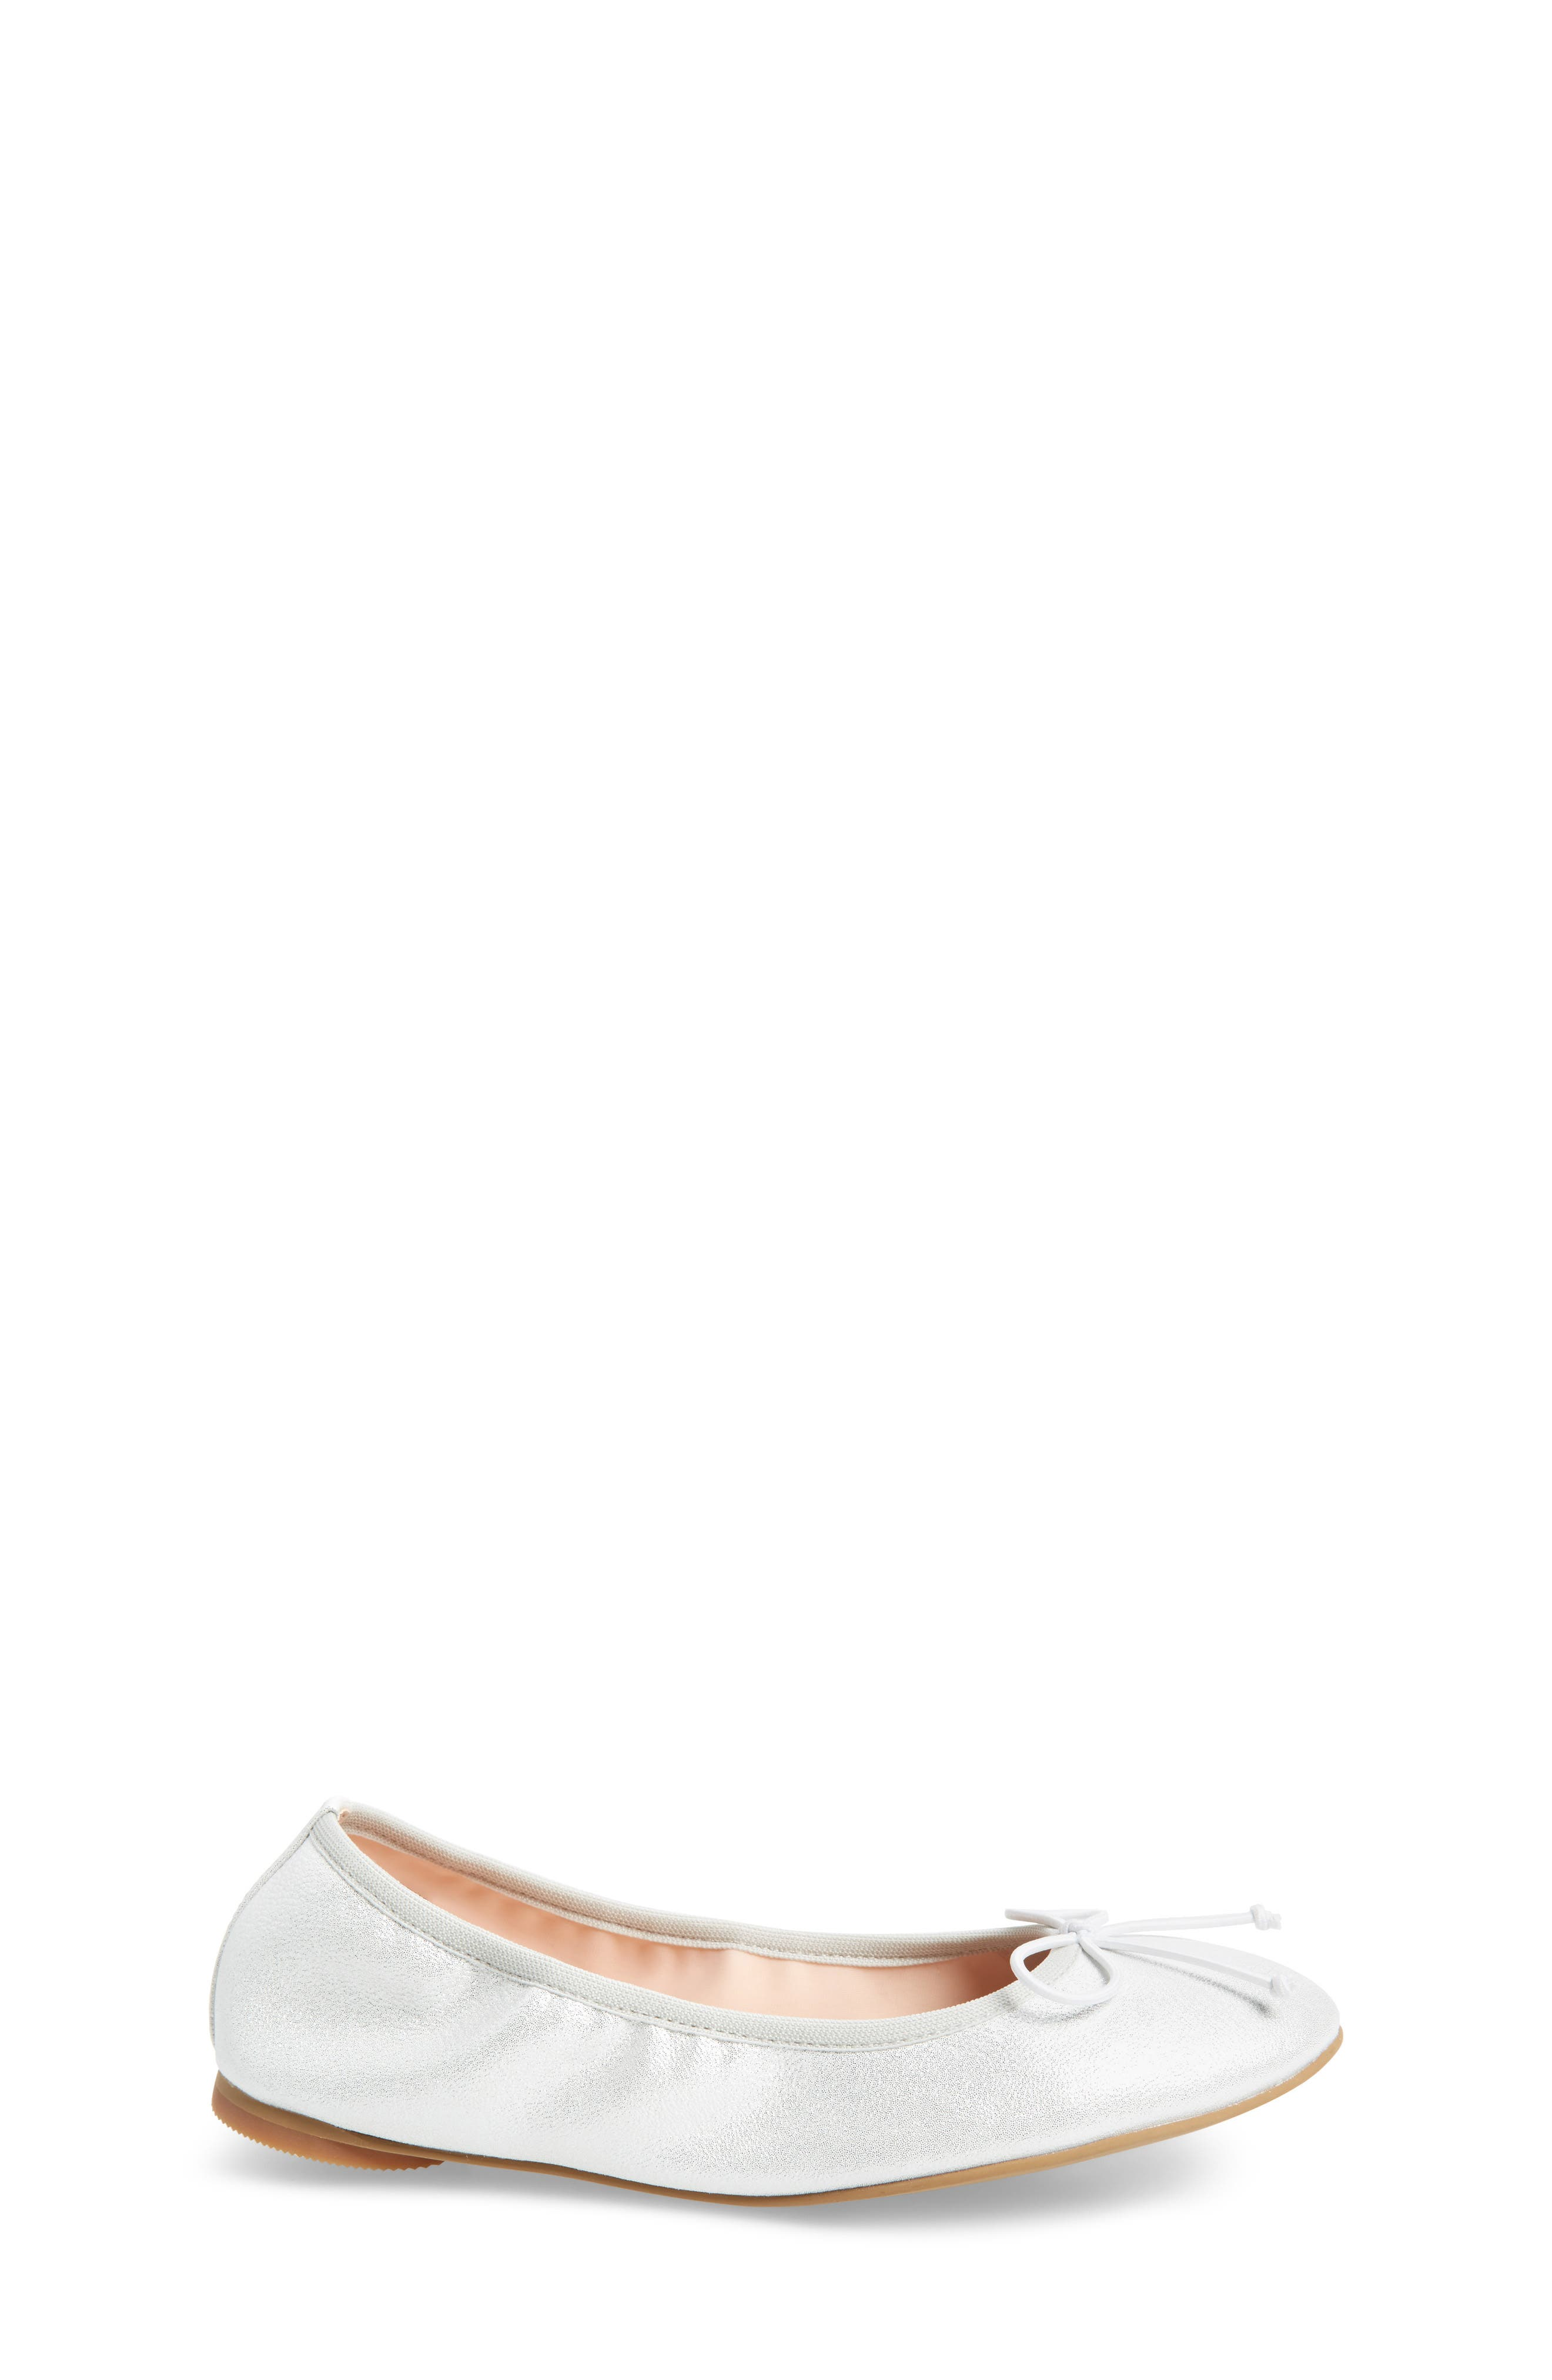 Bella Ballet Flat,                             Alternate thumbnail 3, color,                             Silver Shimmer Faux Leather